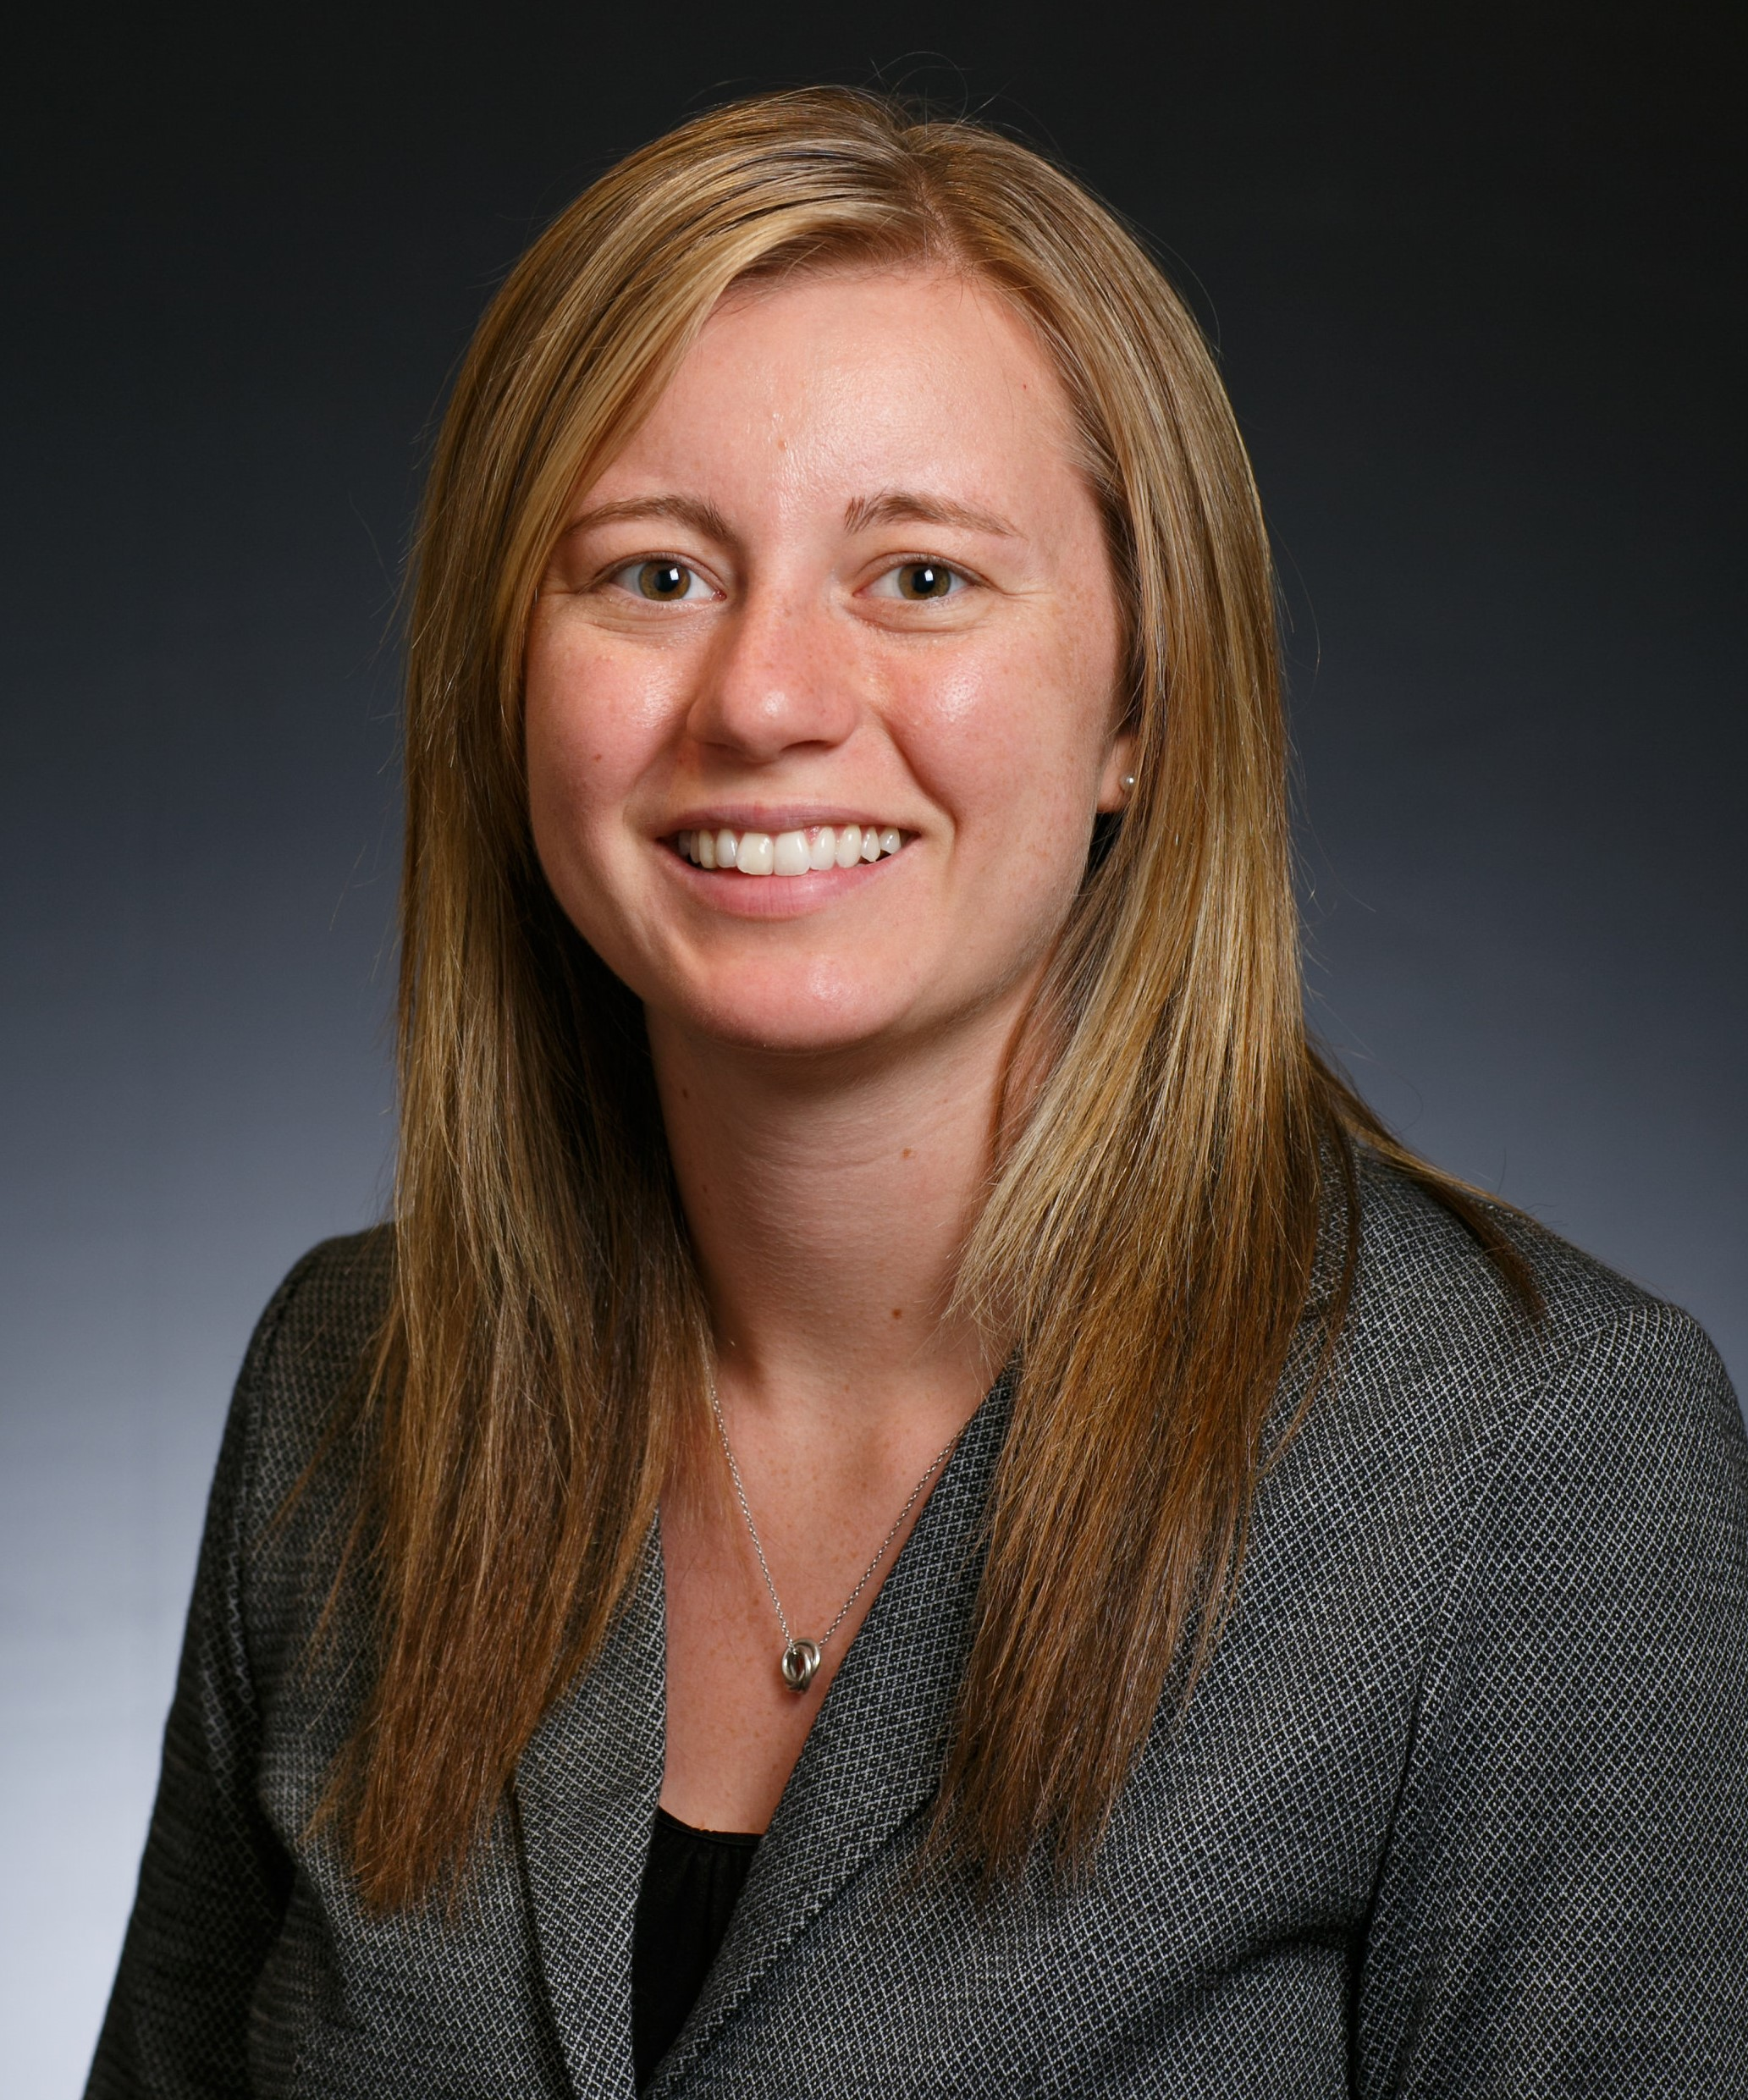 Leah Leaman Earns Certified Public Accountant (CPA) Designation